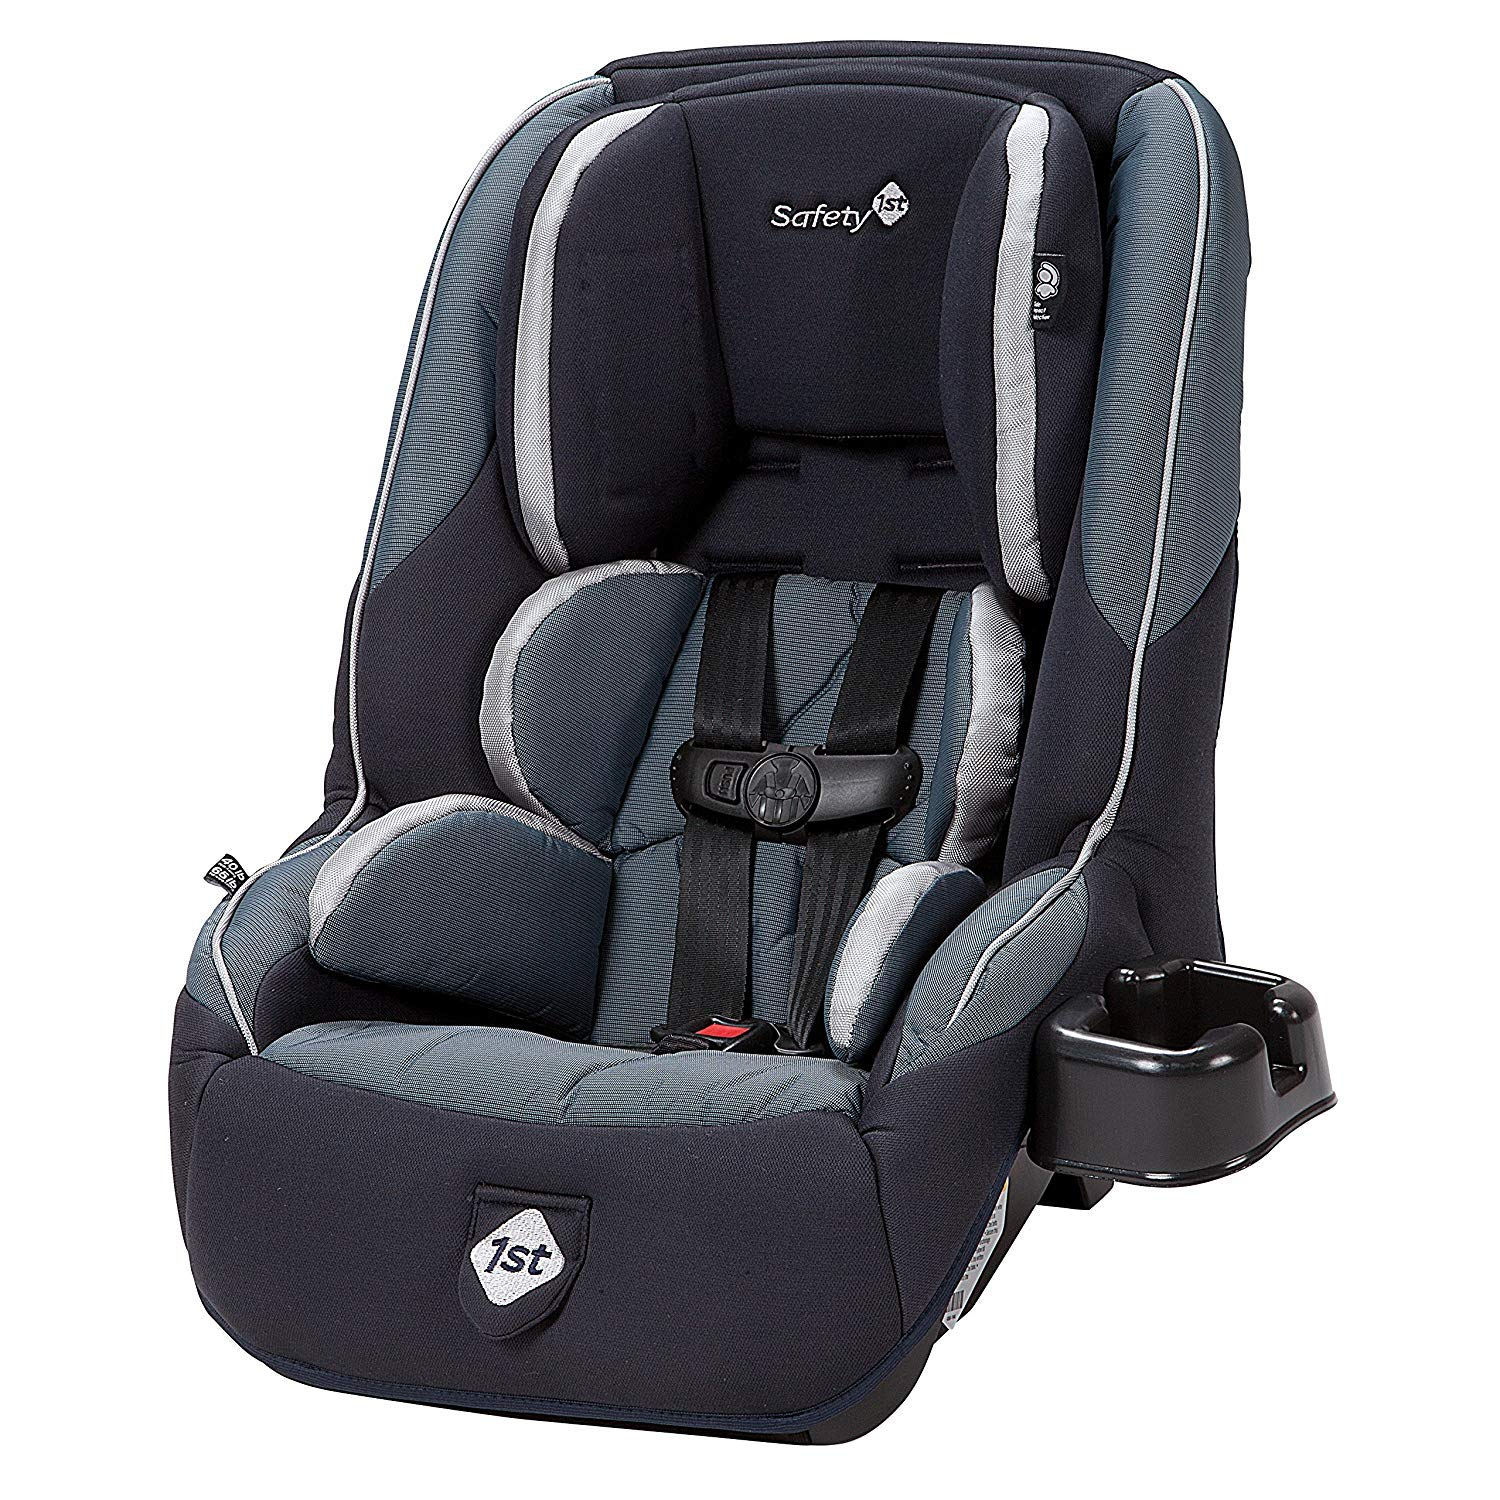 Safety 1st Guide 65 Convertible Car Seat}